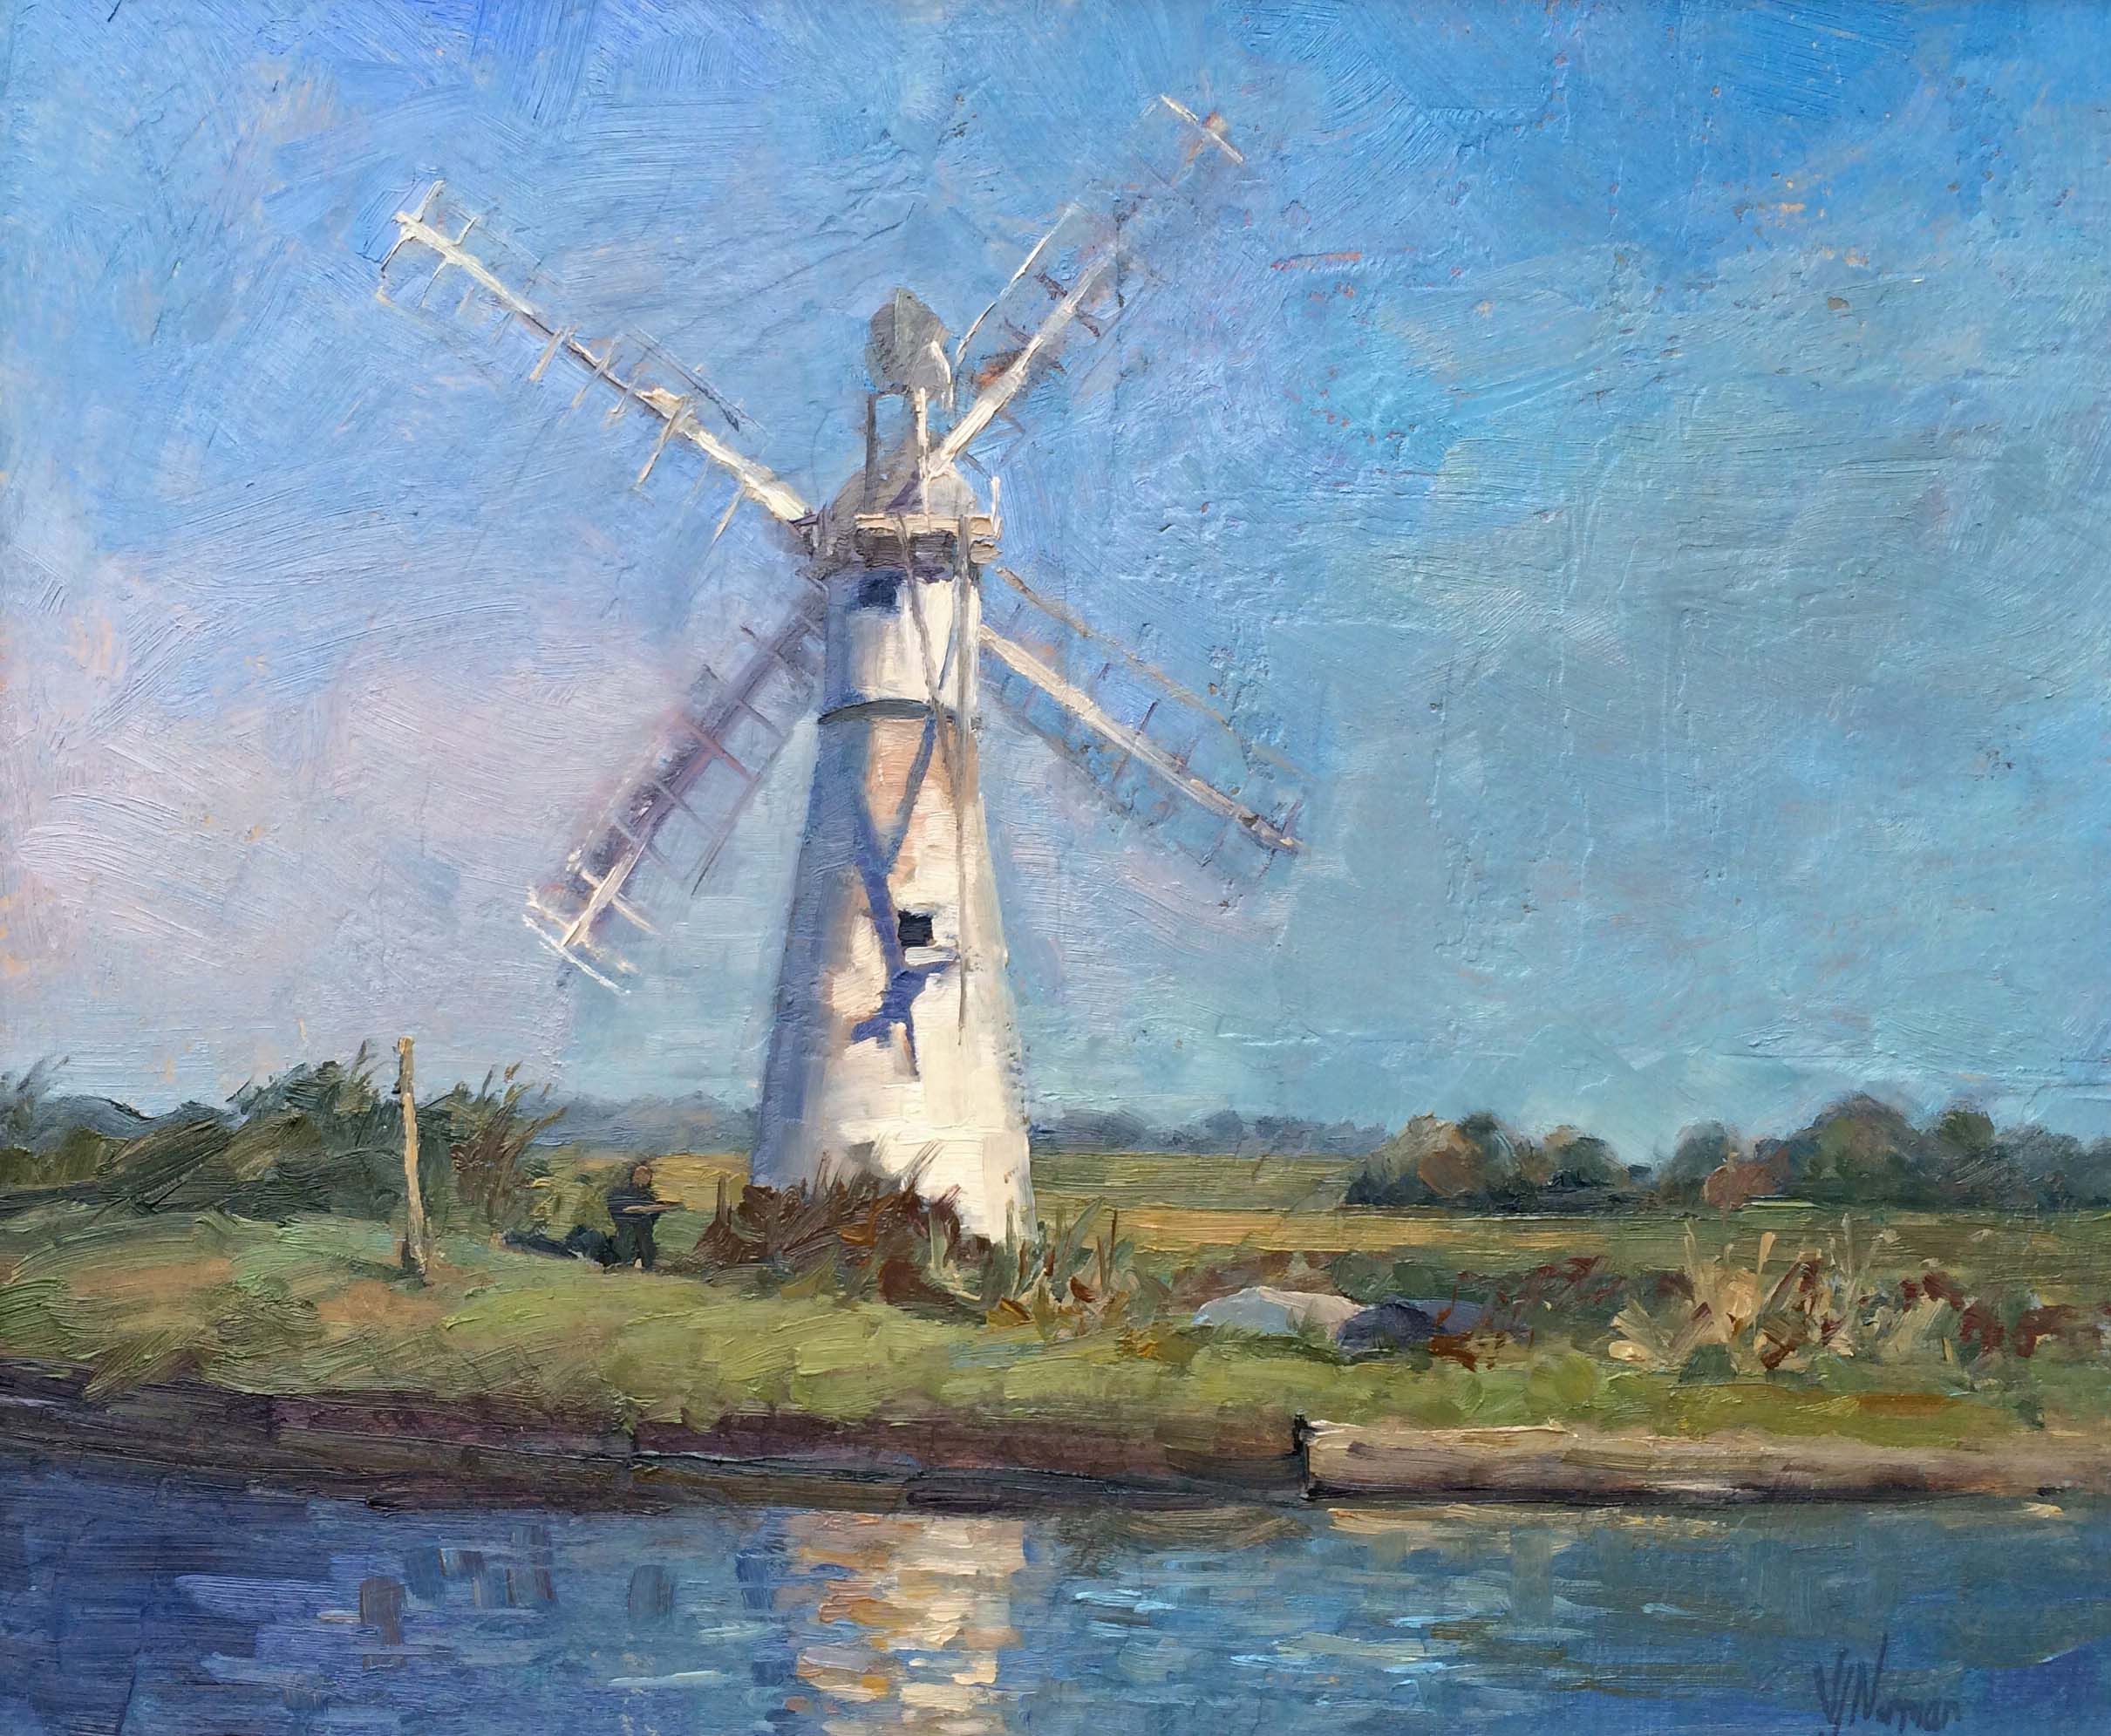 Thurne Mill won second prize at A Brush with the Broads